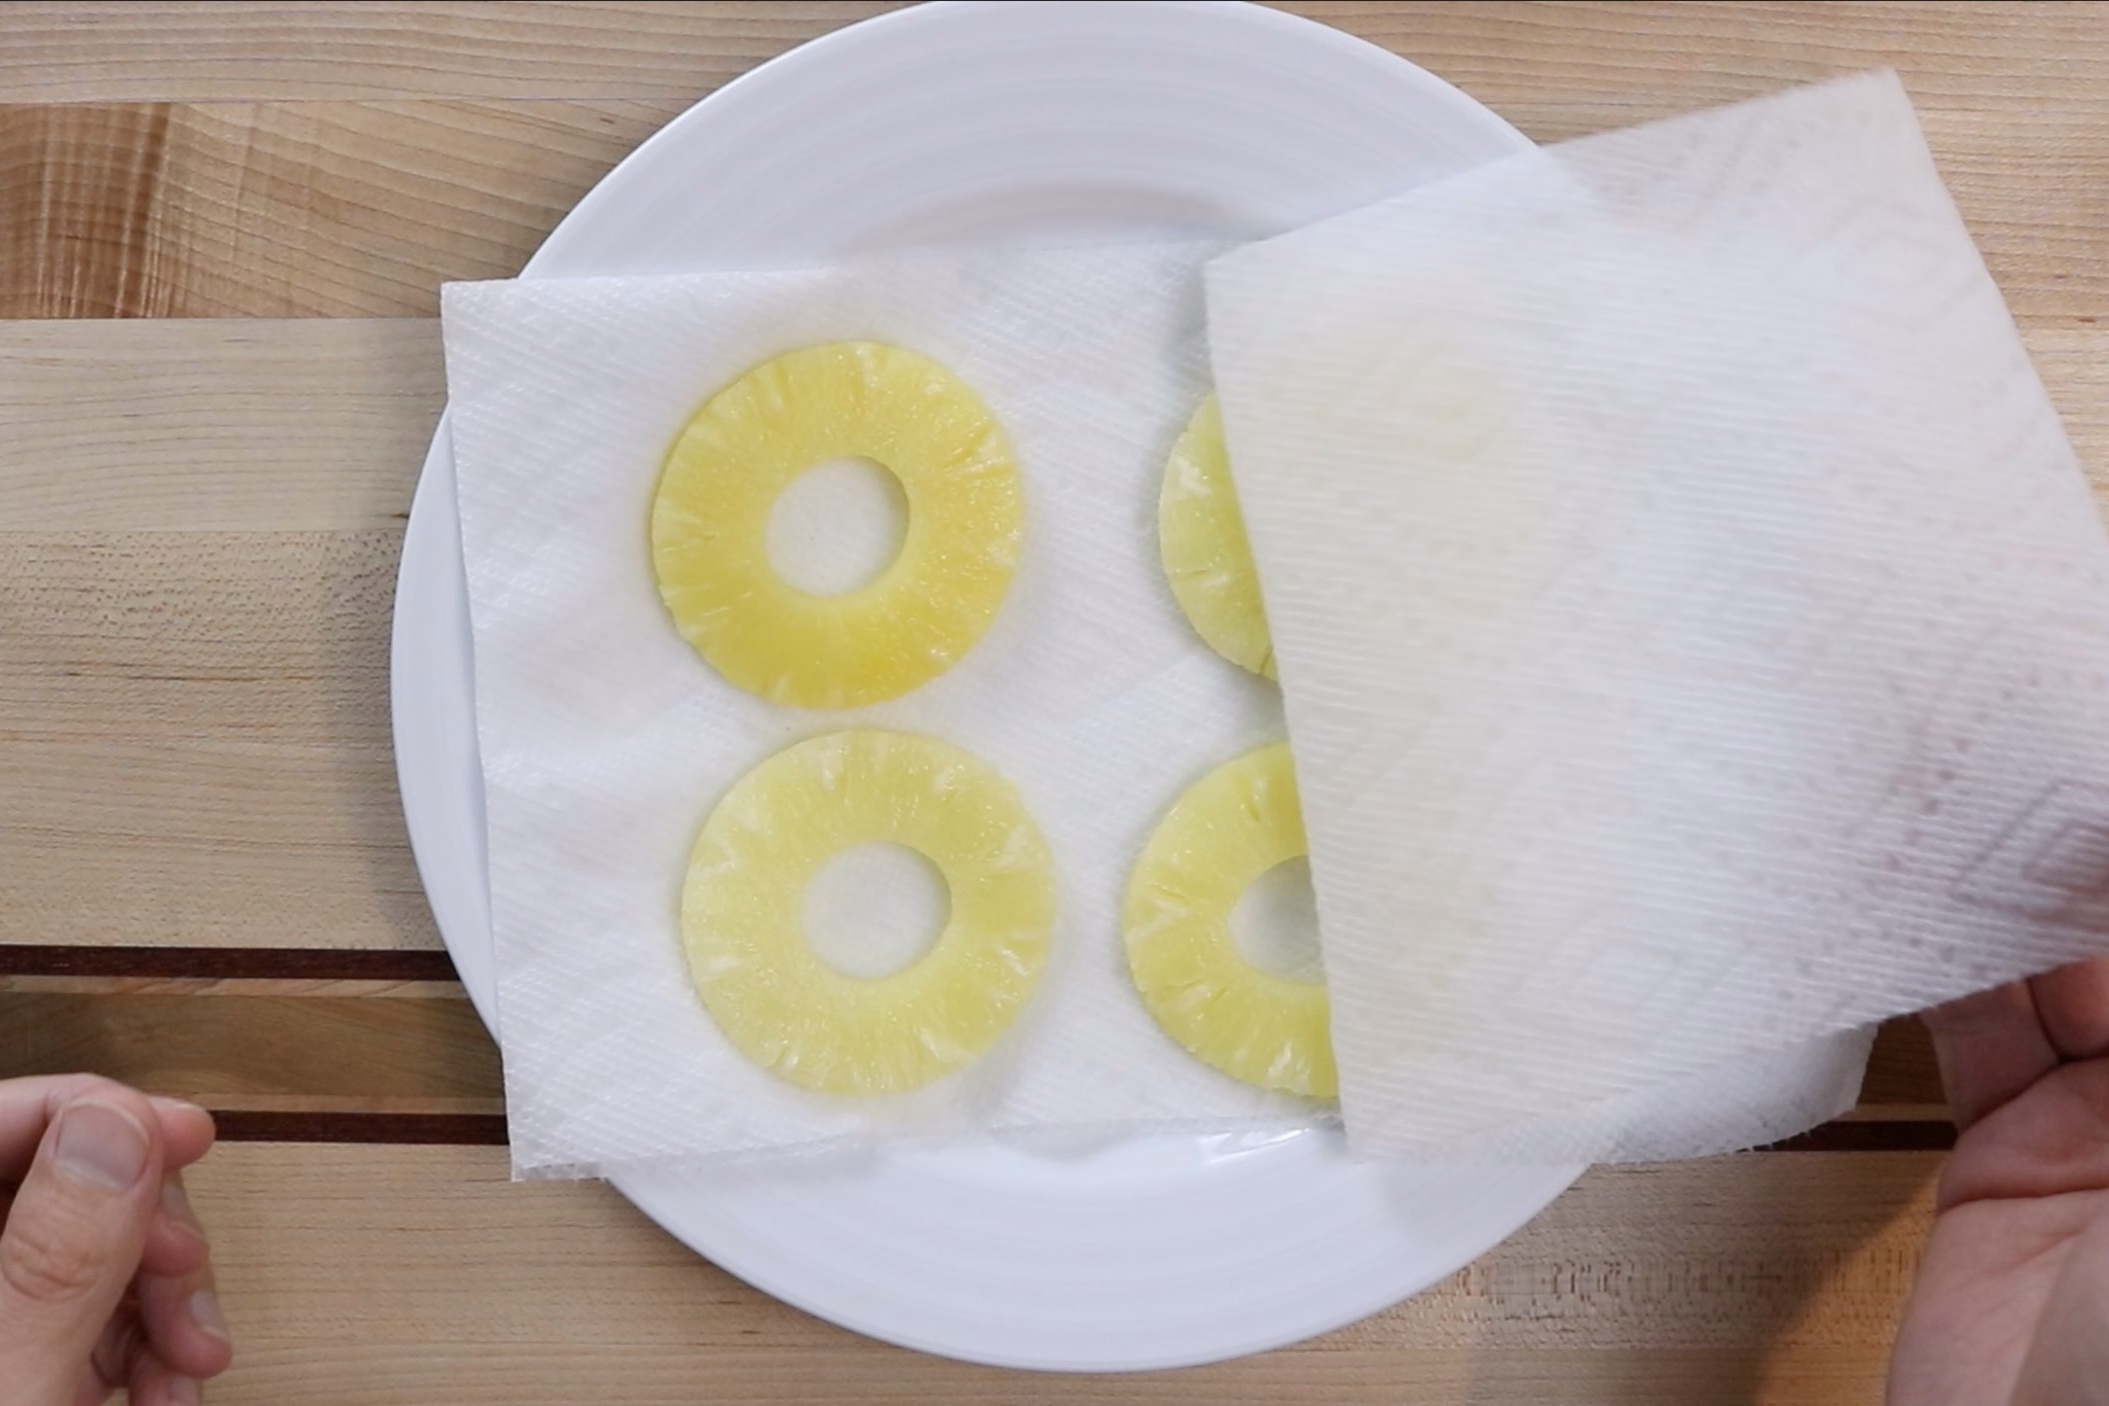 2. Take pineapple out of can and dry between two paper towels. -